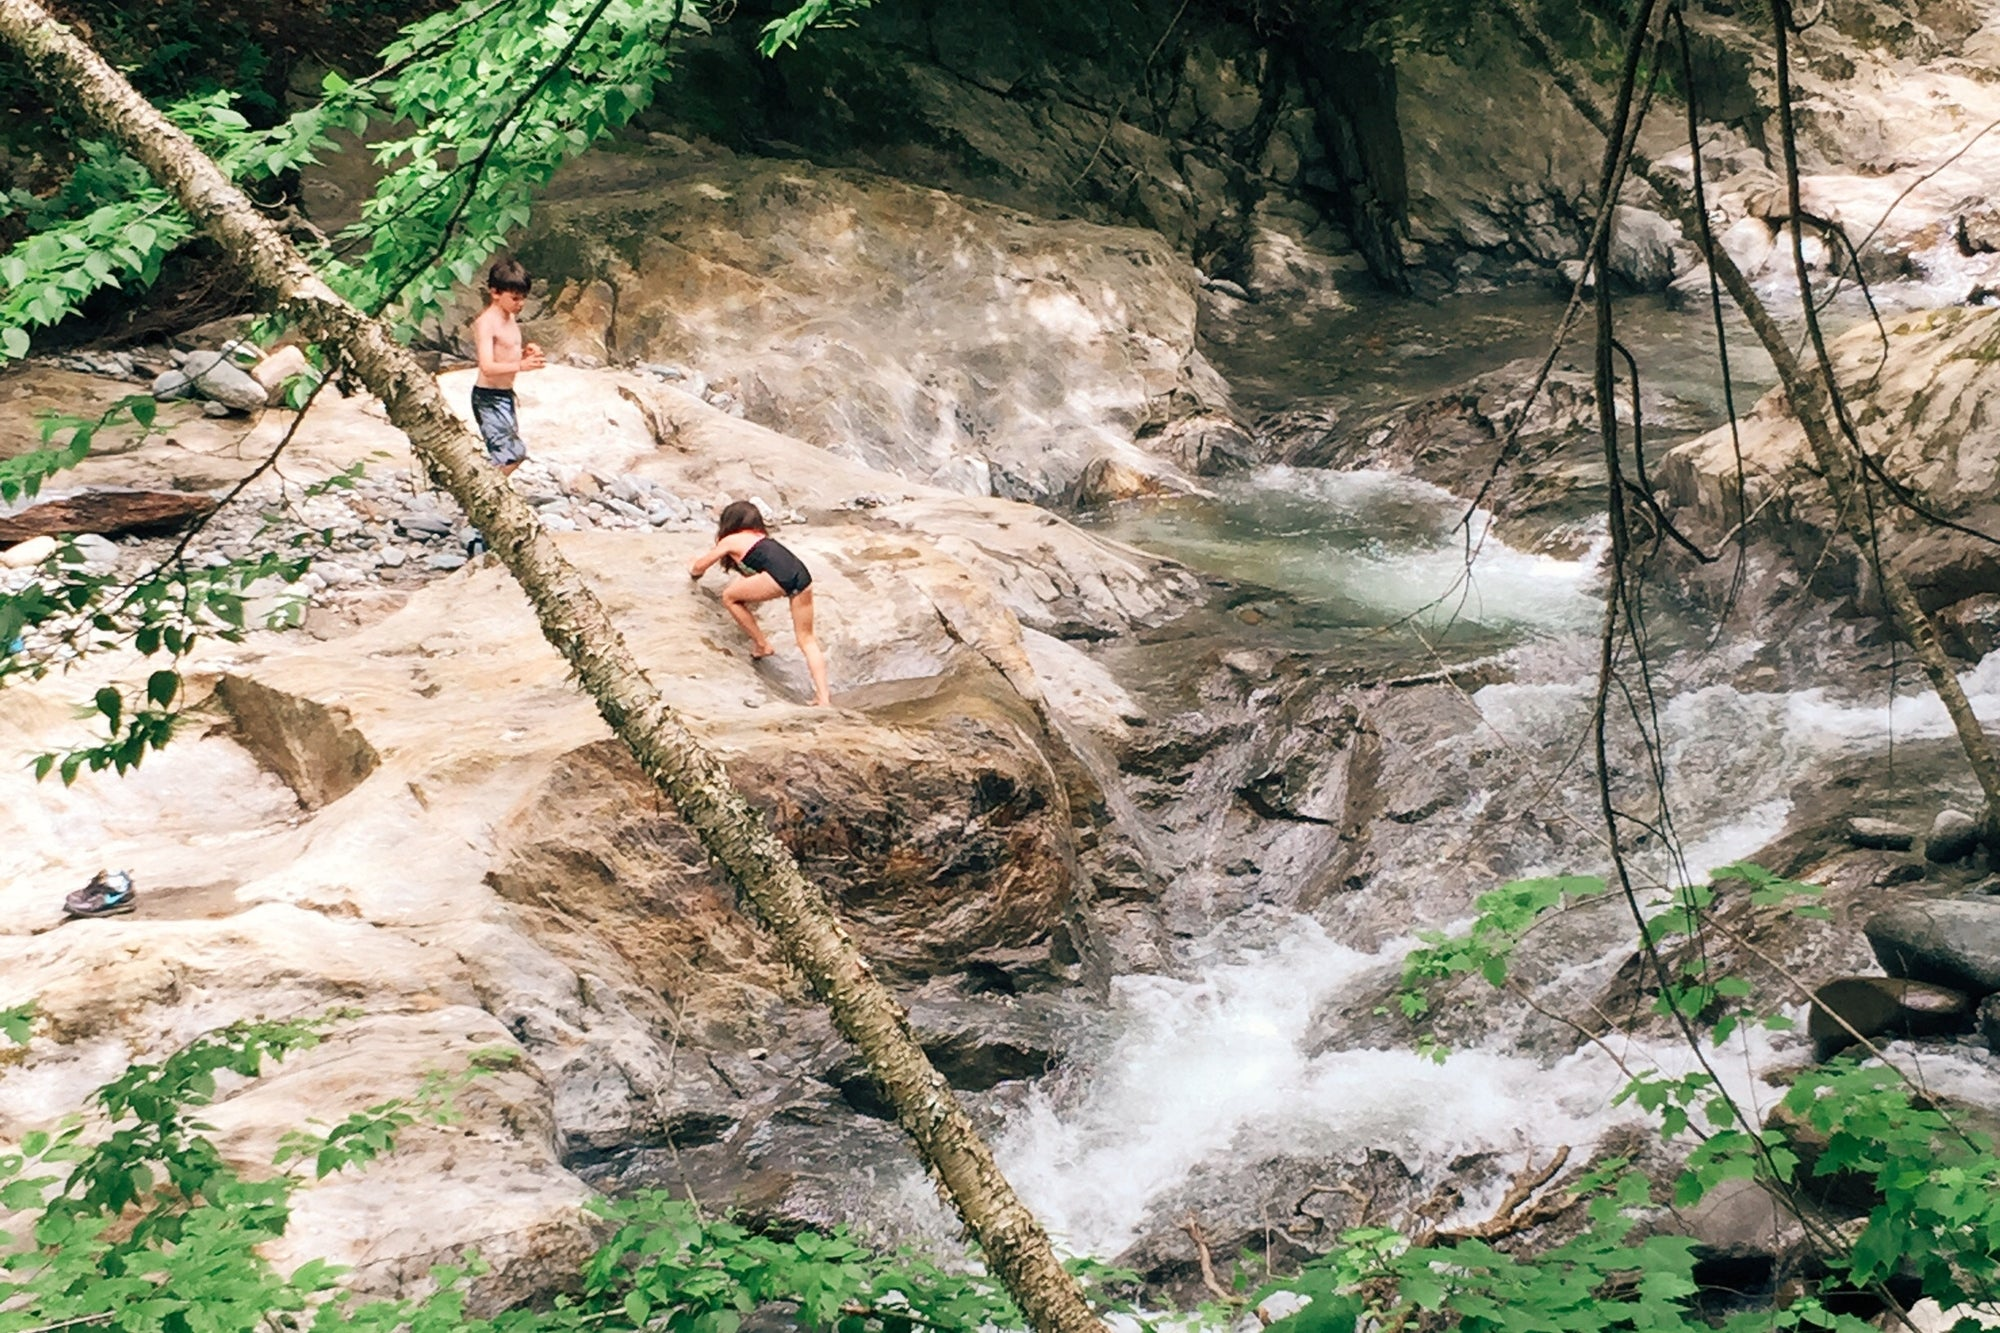 young boy and girl climbing a rock with a stream near by